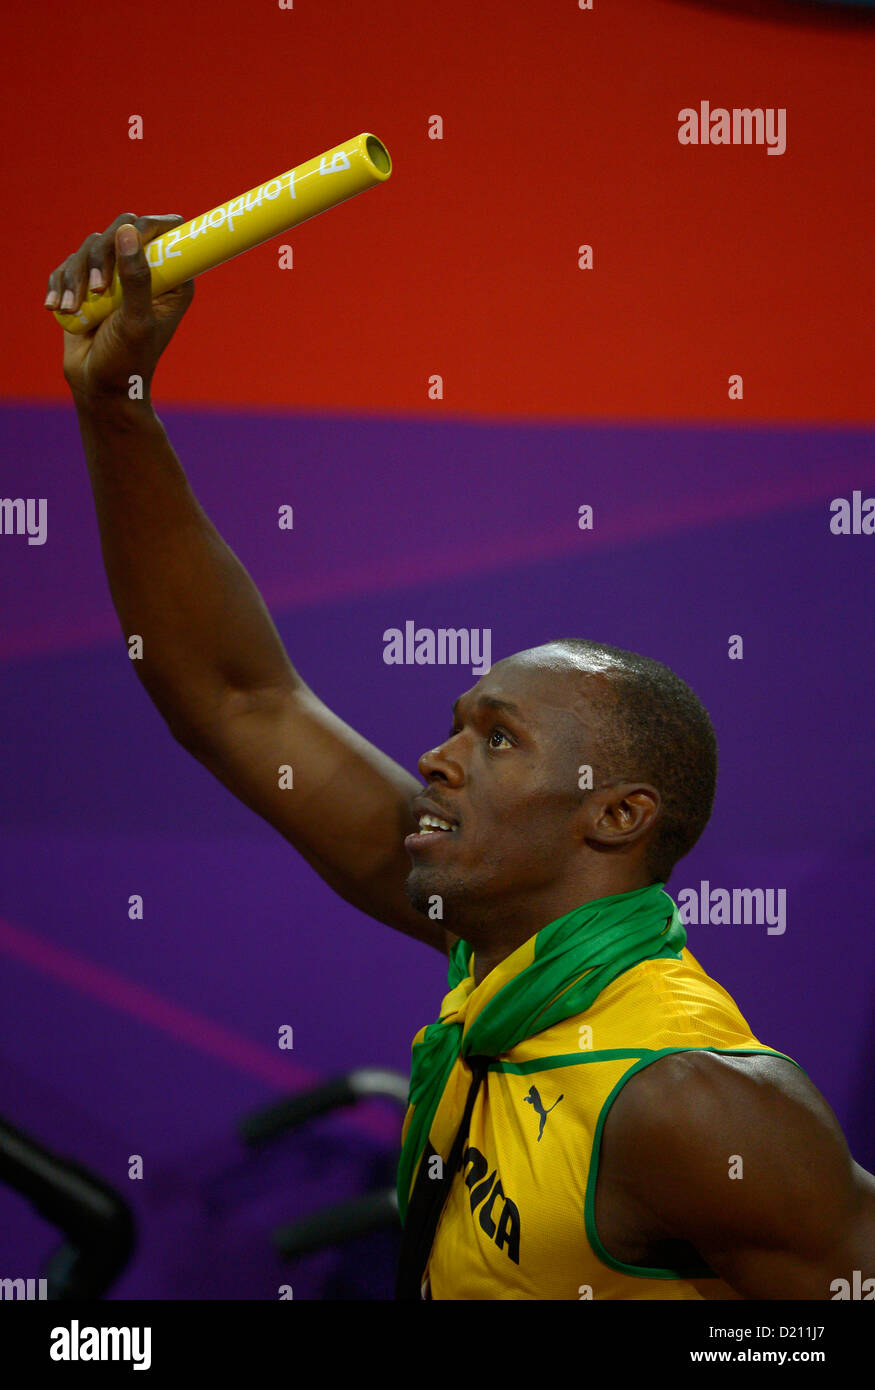 Jamaica's Usain Bolt is given the baton by officials after an earlier altercation. Athletics - Stock Image